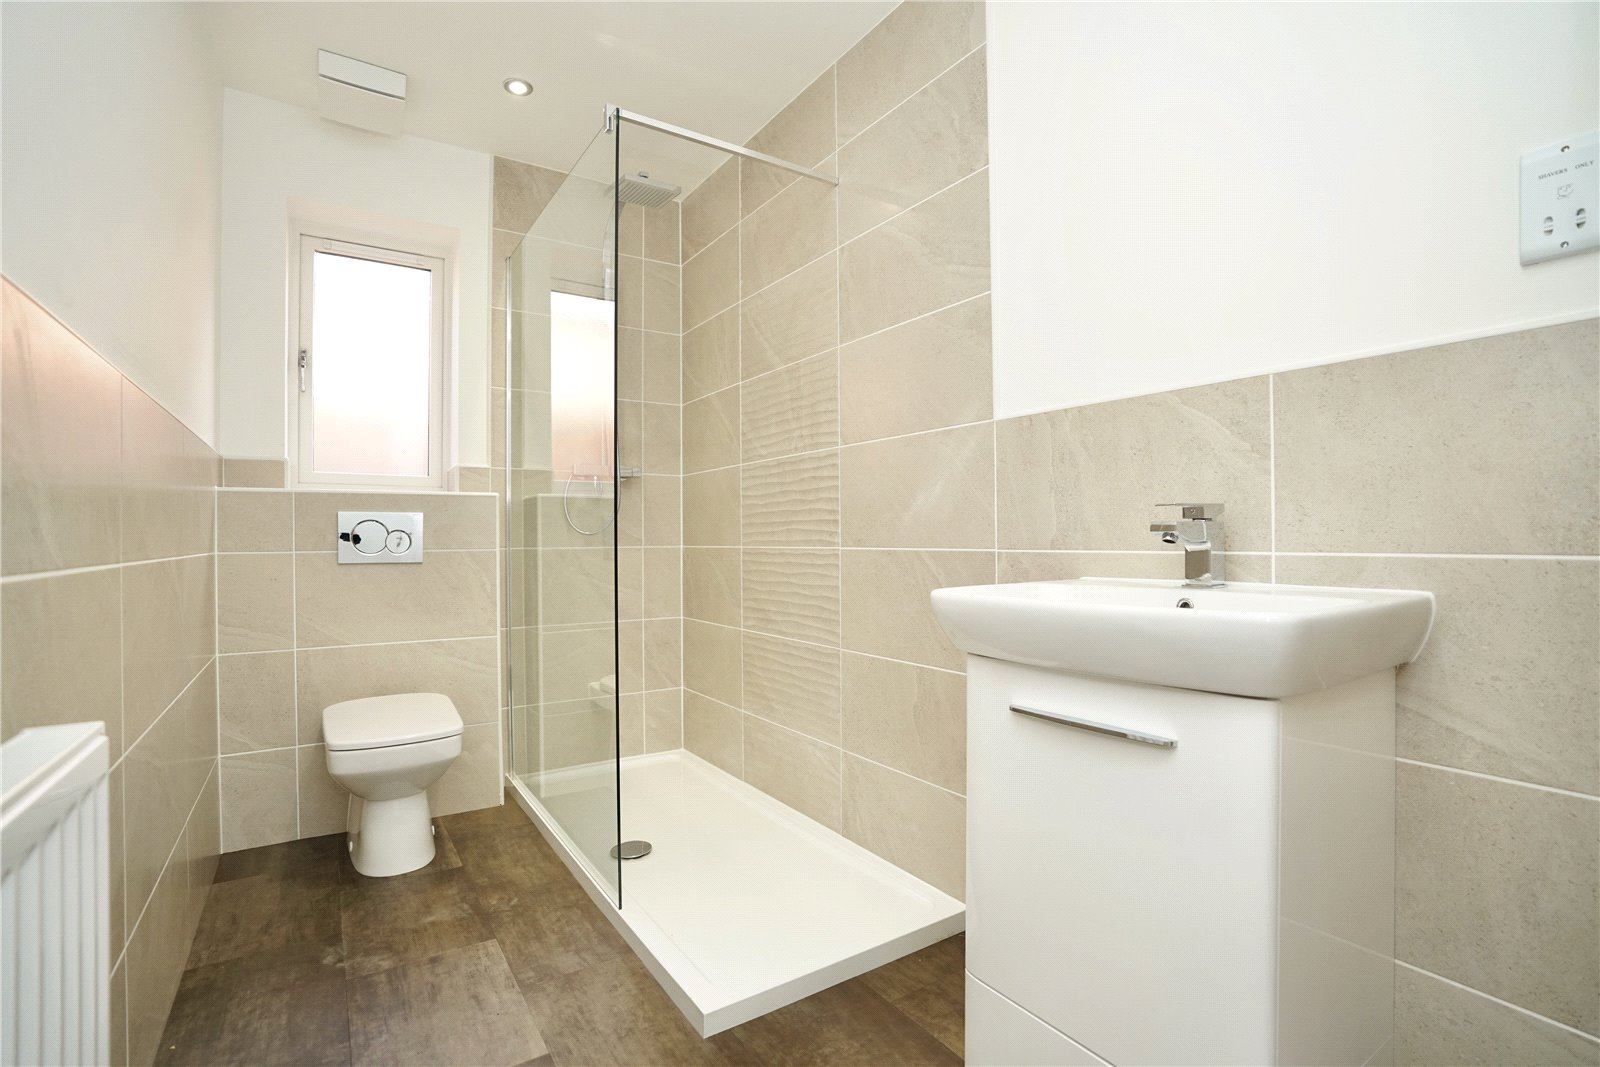 3 bed bungalow for sale in Whittlesey, PE7 1RU 6